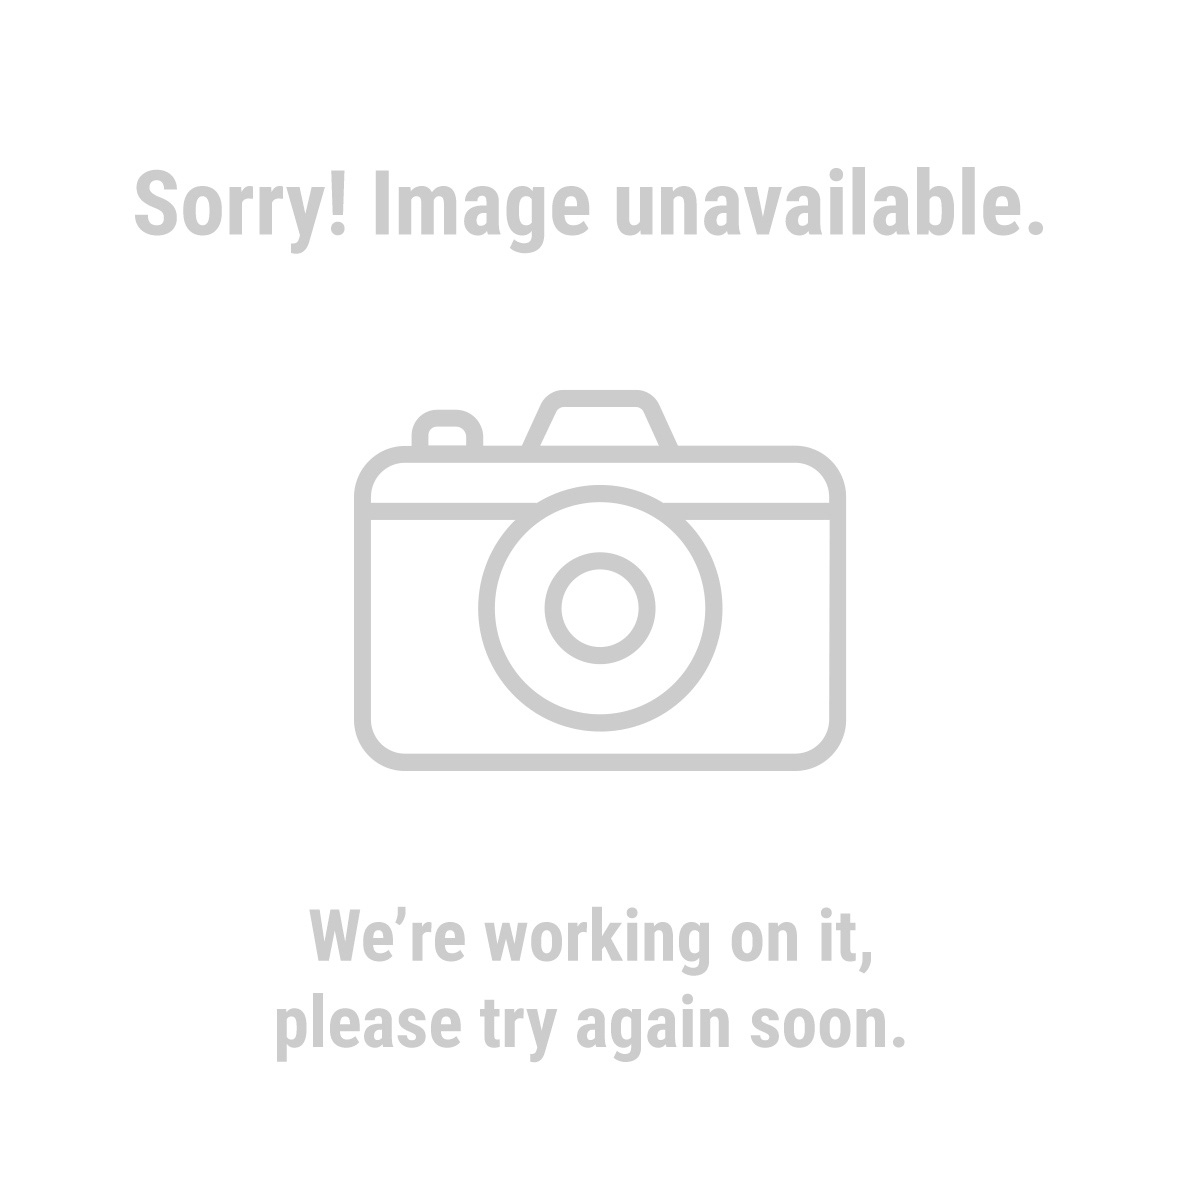 Home Security Camera Systems: Home Security Camera Systems